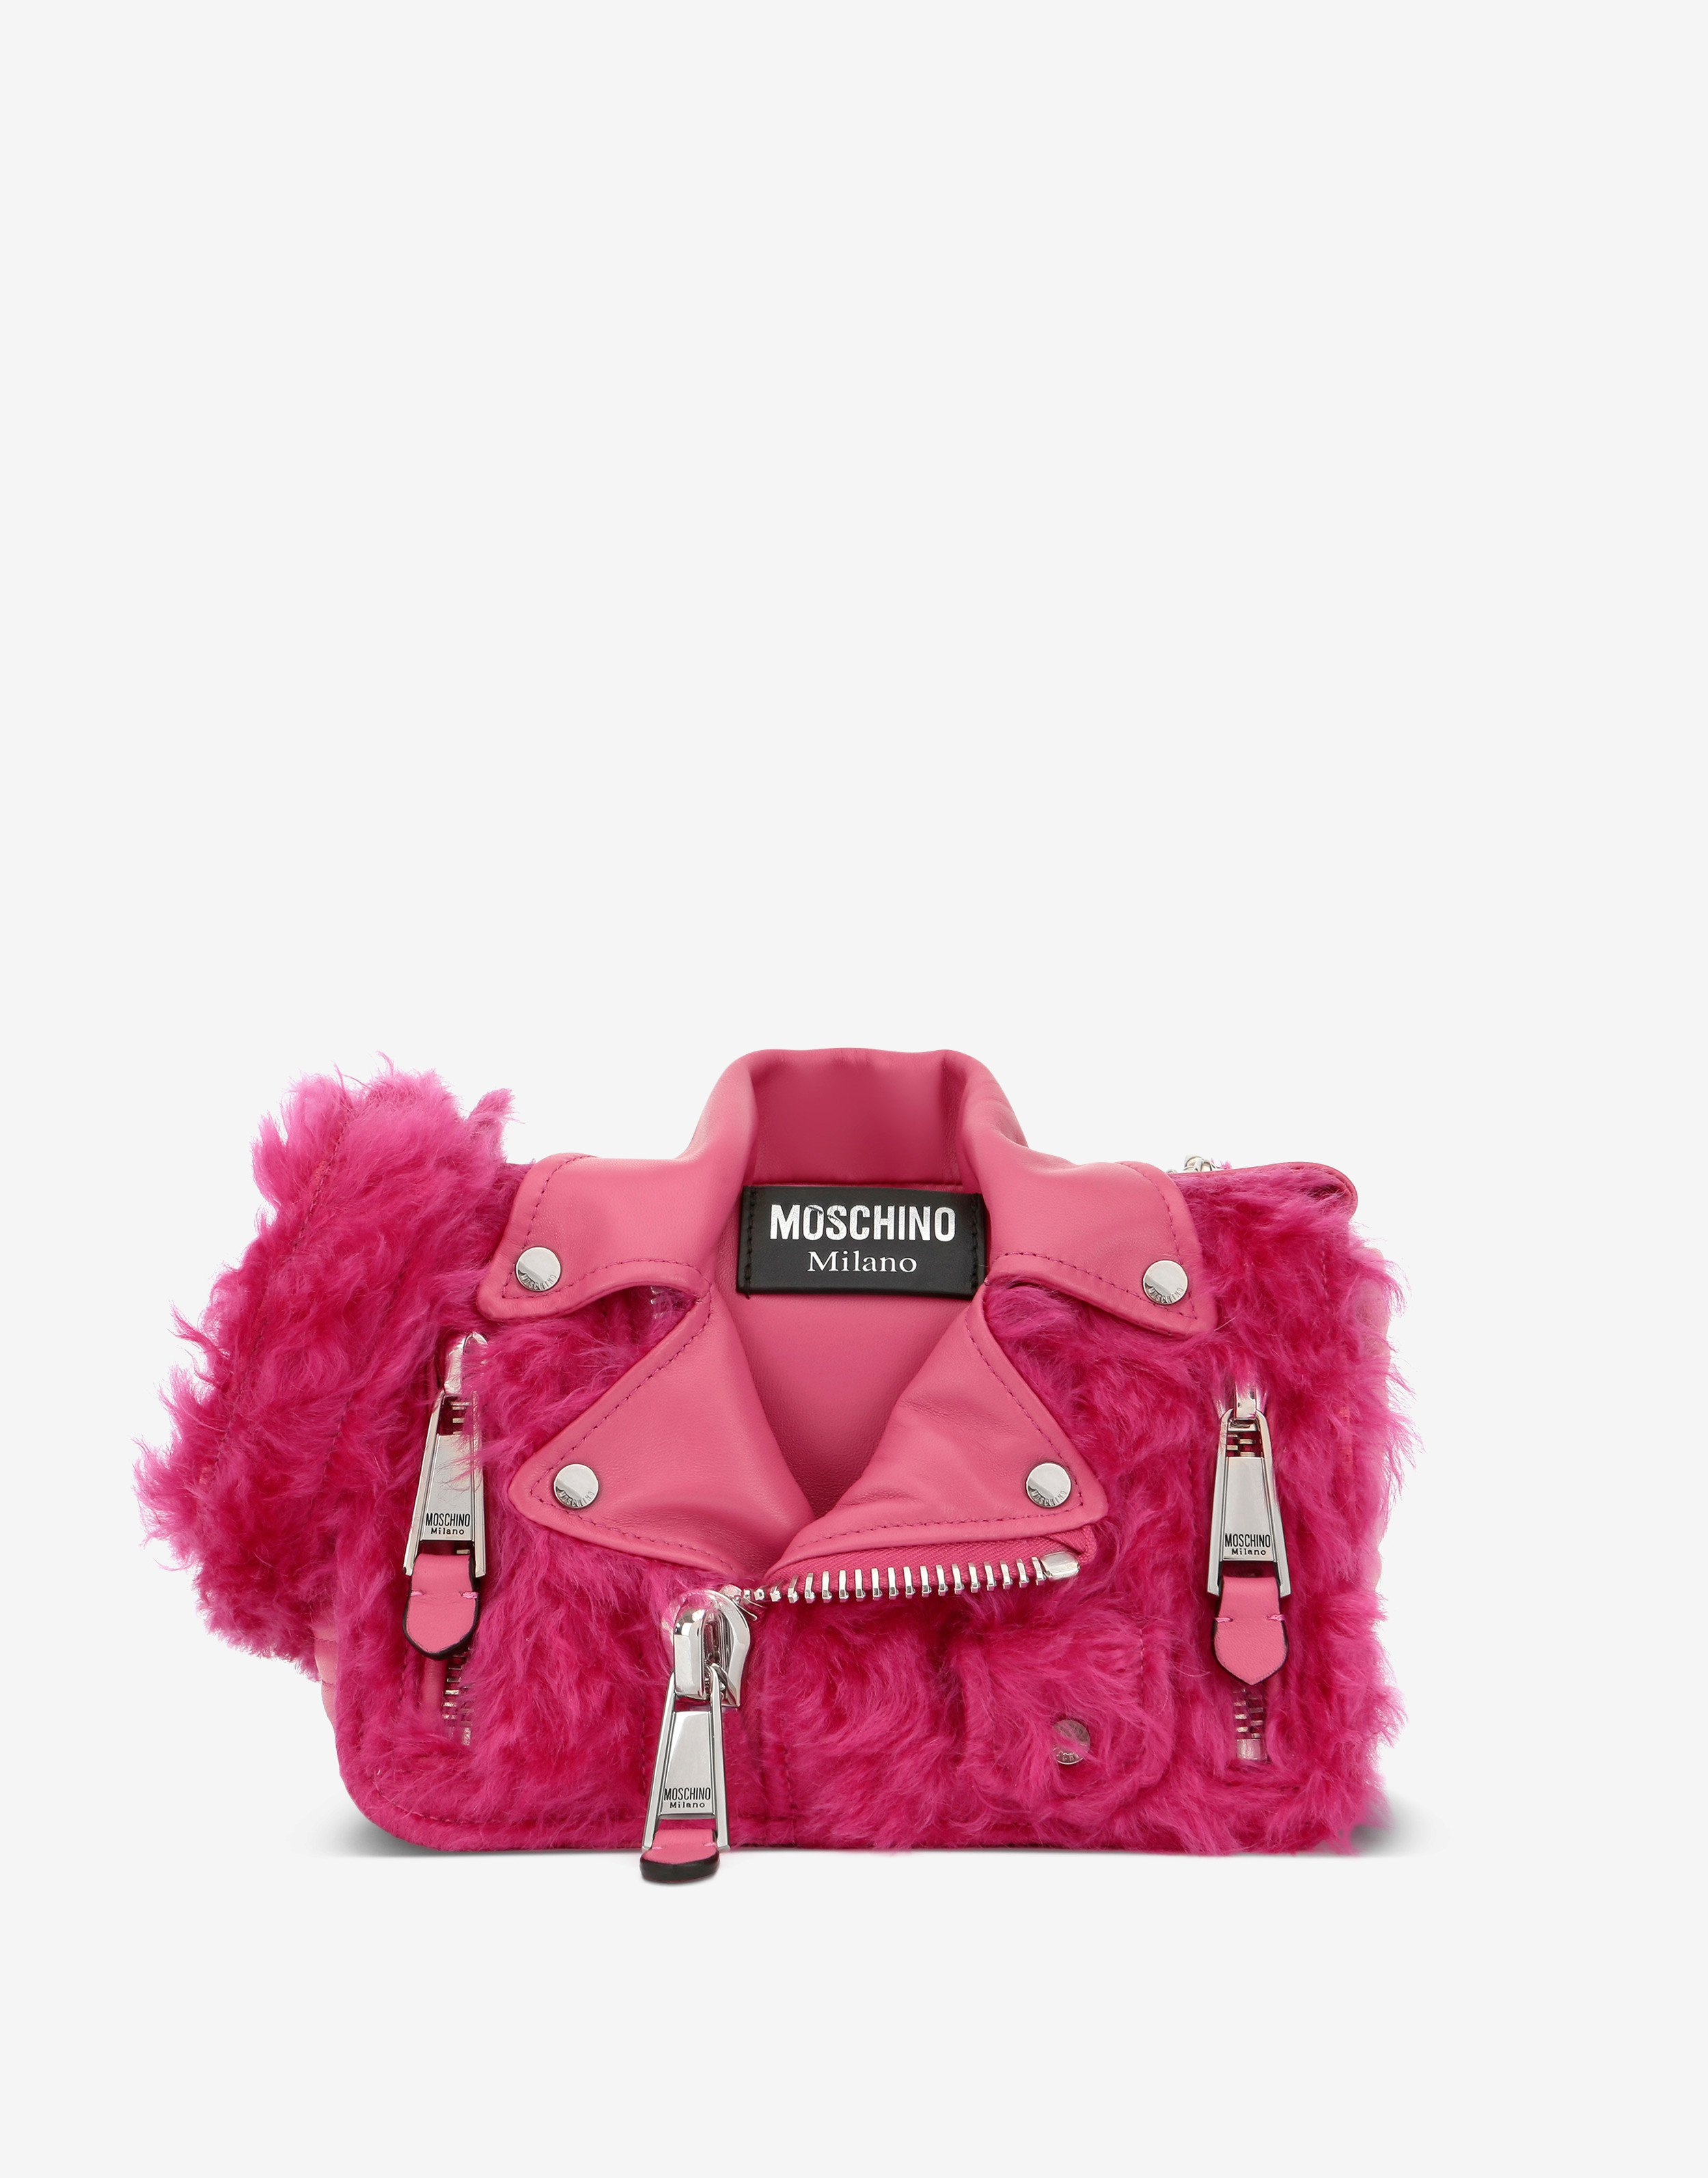 Borsa peluches Moschino in mohair inverno 2019